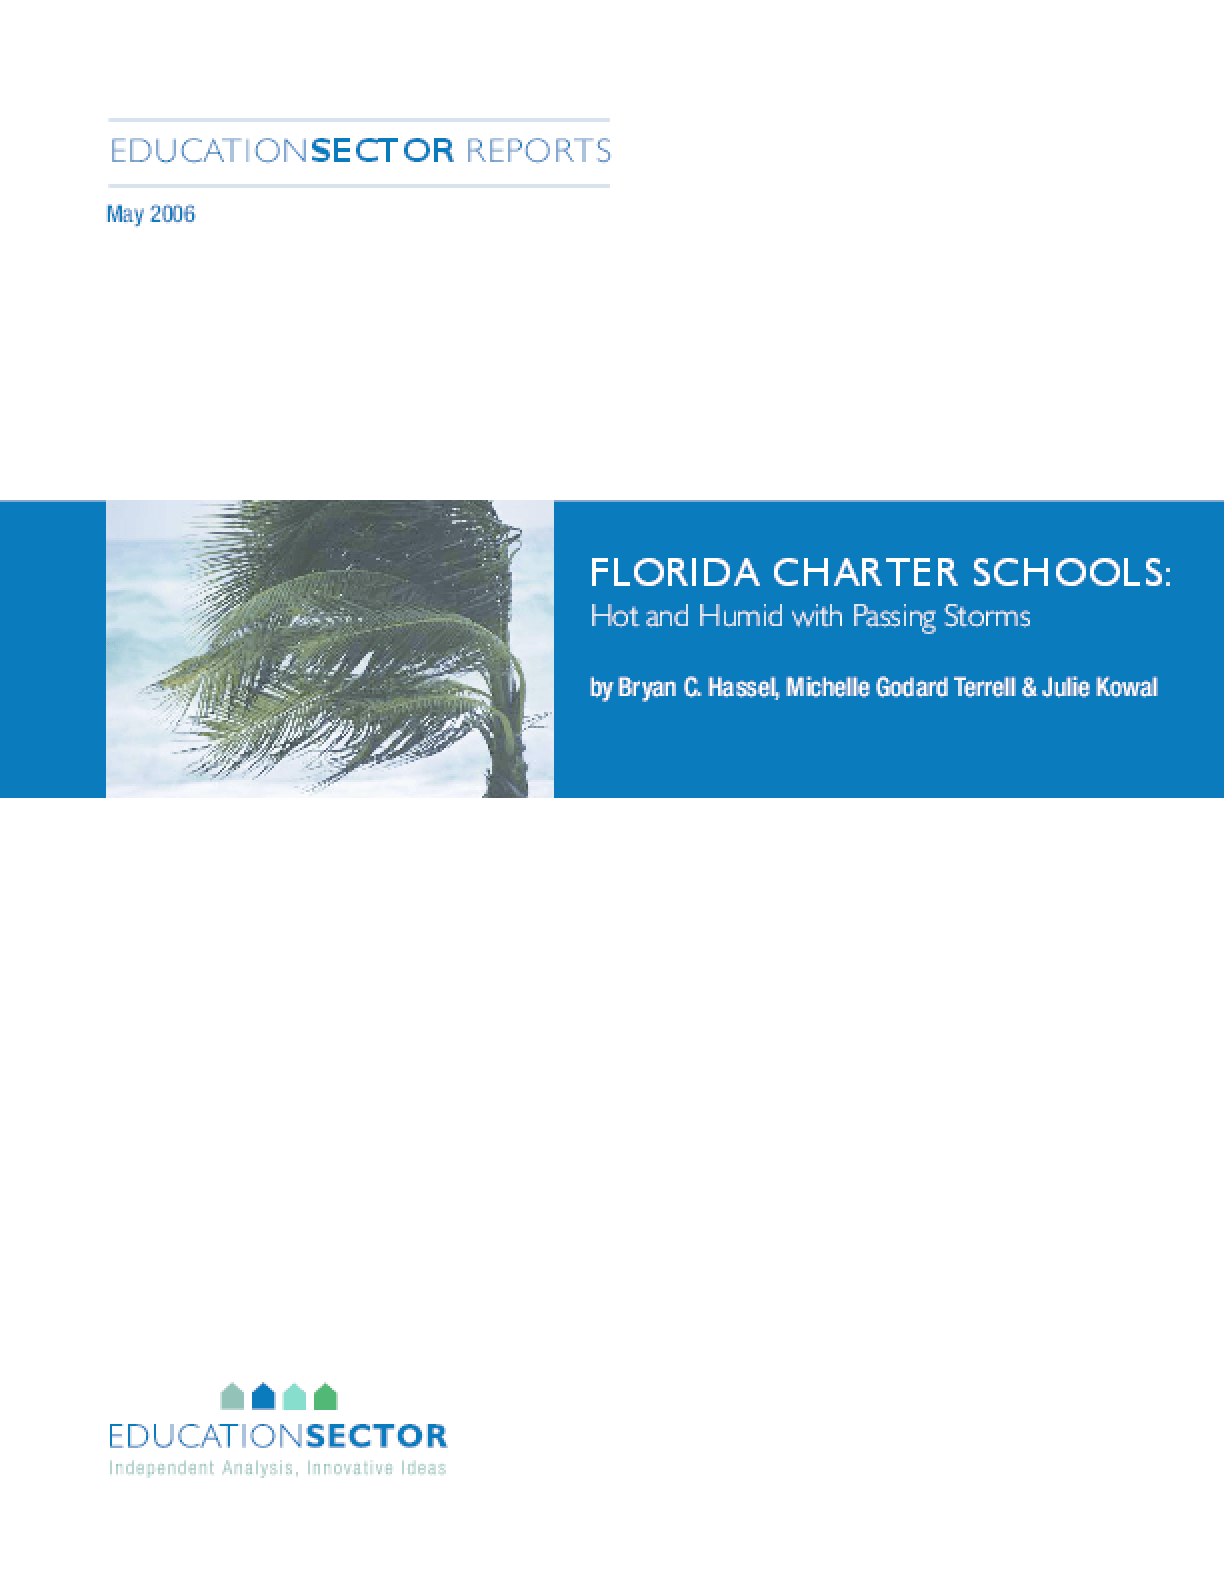 Florida Charter Schools: Hot and Humid with Passing Storms